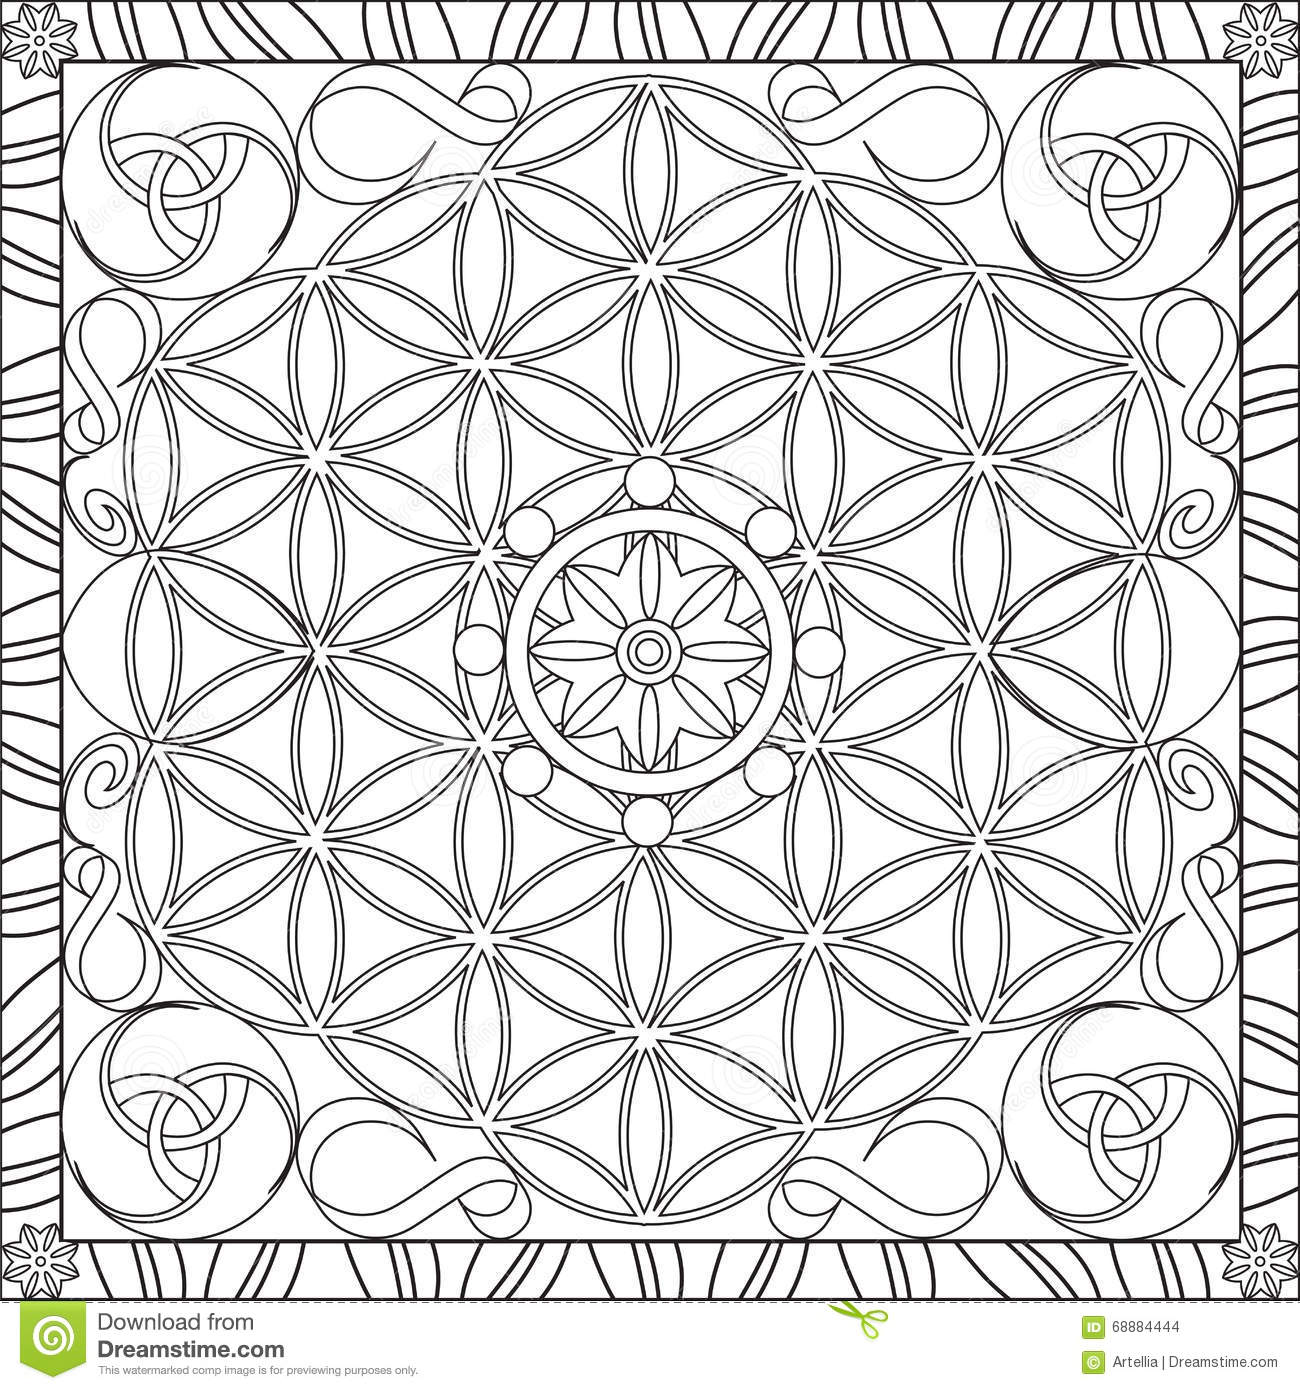 Book of life for coloring - Coloring Page Book For Adults Square Format Flower Of Life Mandala Design Vector Illustration